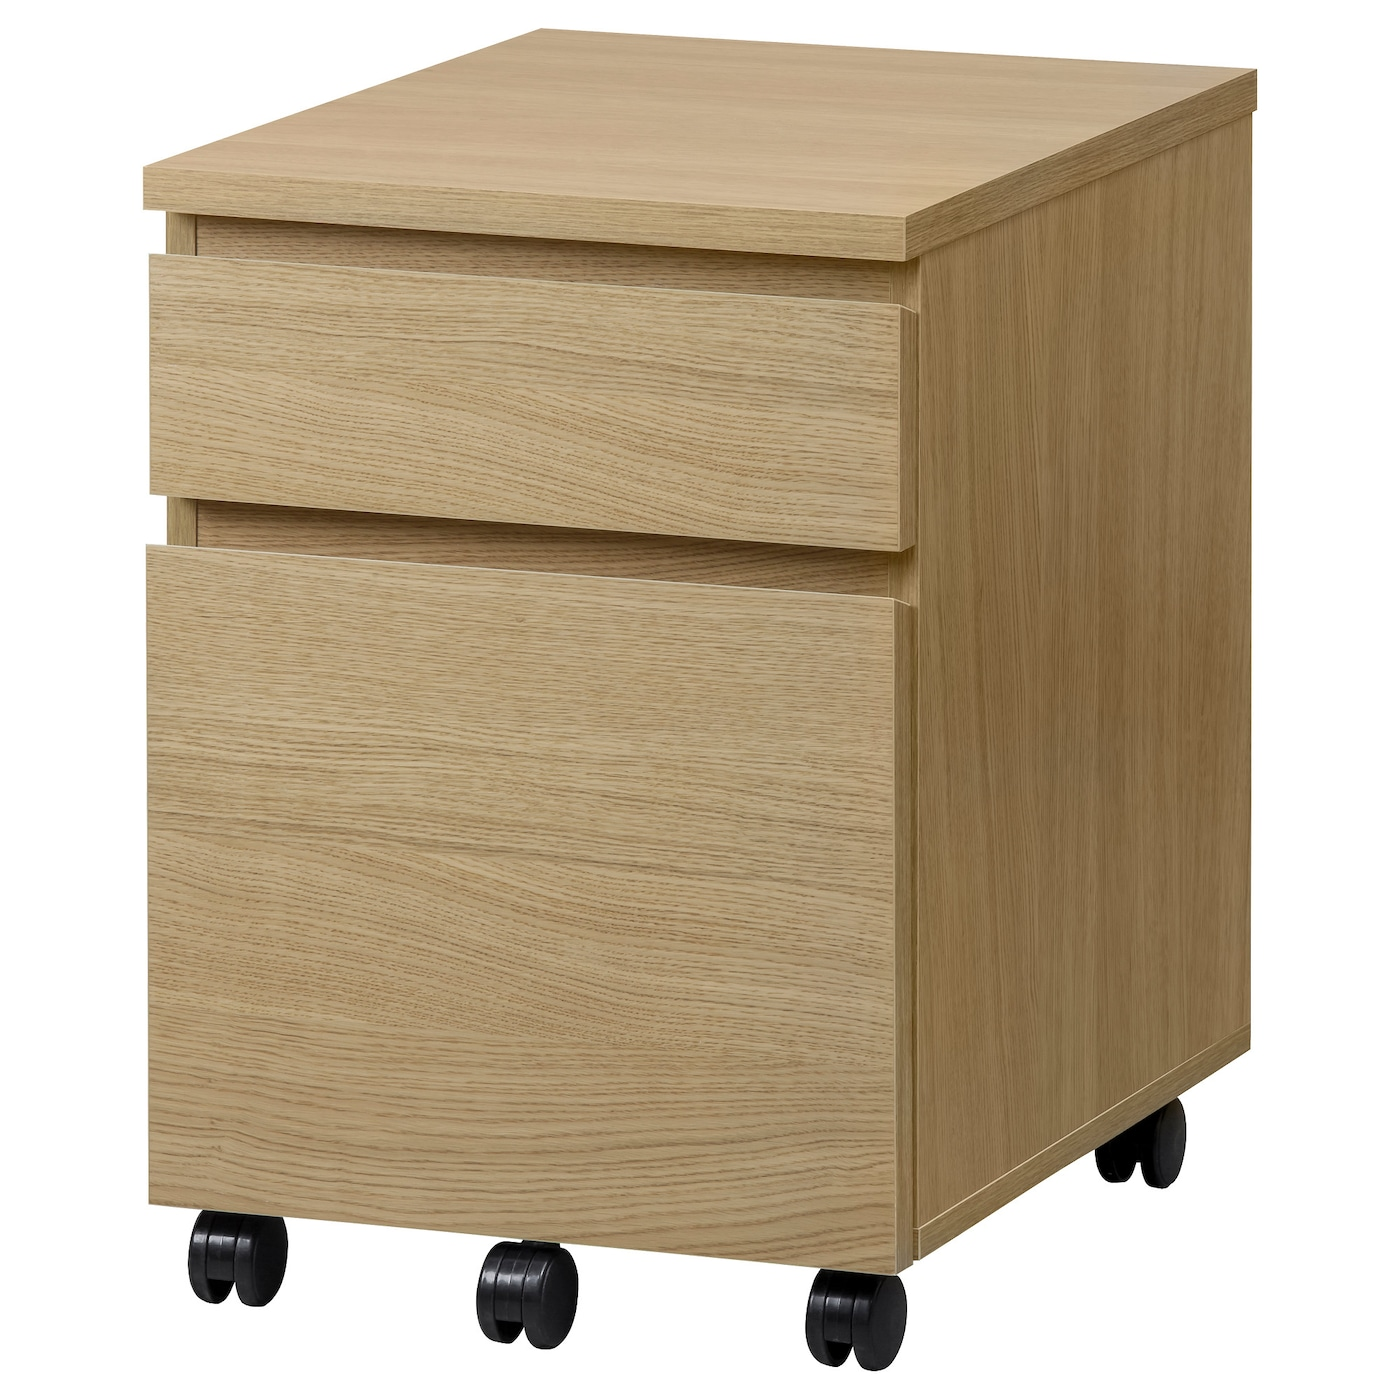 malm drawer unit on castors oak effect 42x59 cm ikea. Black Bedroom Furniture Sets. Home Design Ideas